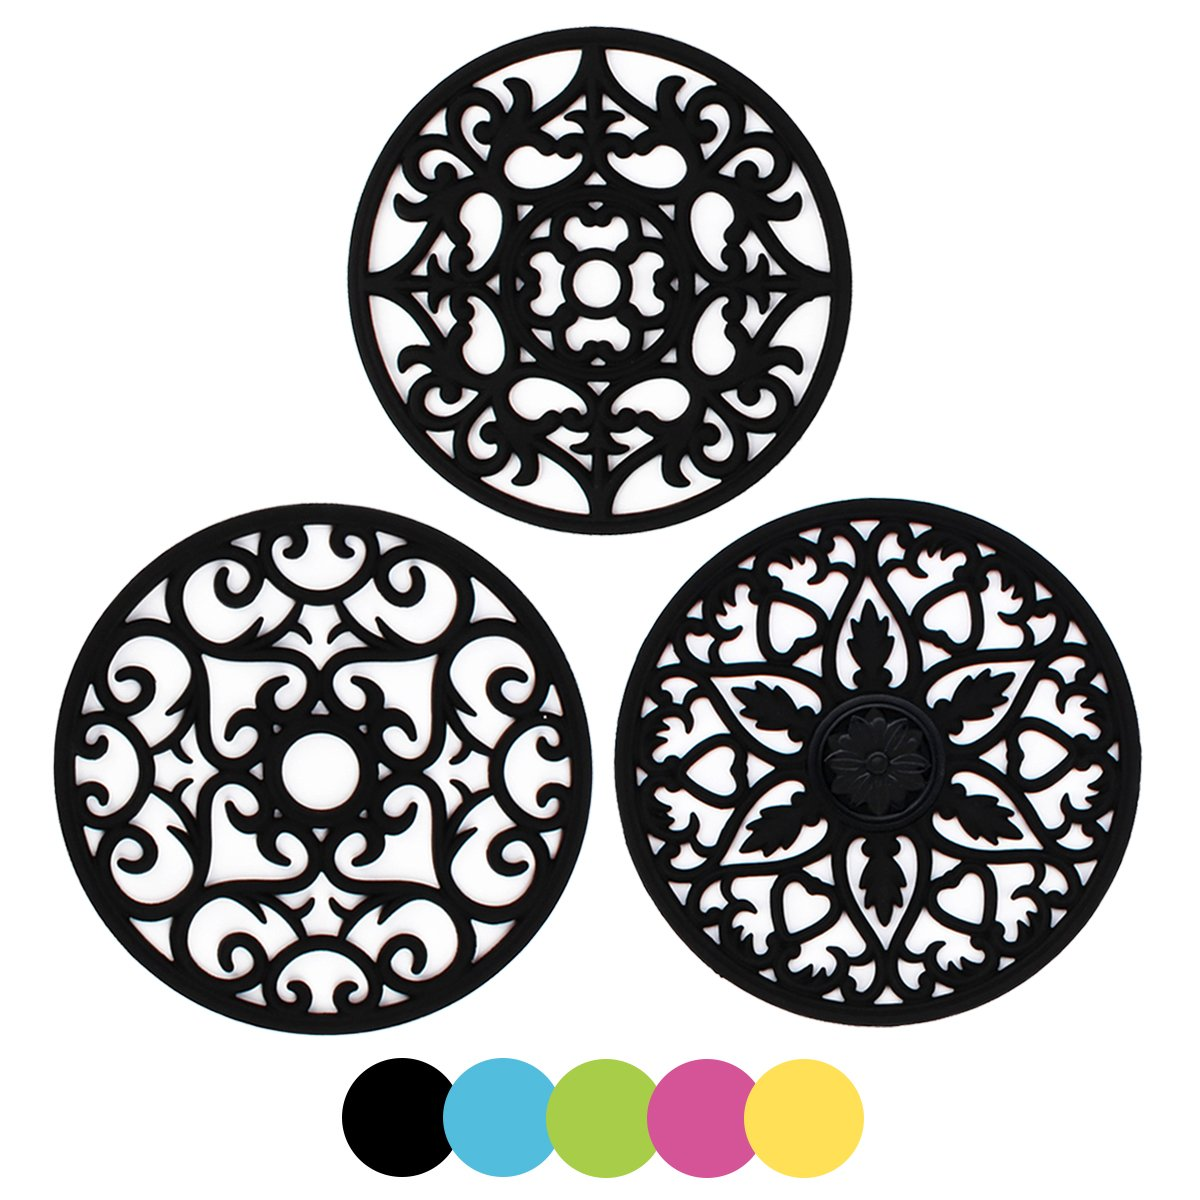 ME.FAN 3 Set Silicone Multi-Use Intricately Carved Trivet Mat - Insulated Flexible Durable Non Slip Coasters (Black) by ME.FAN